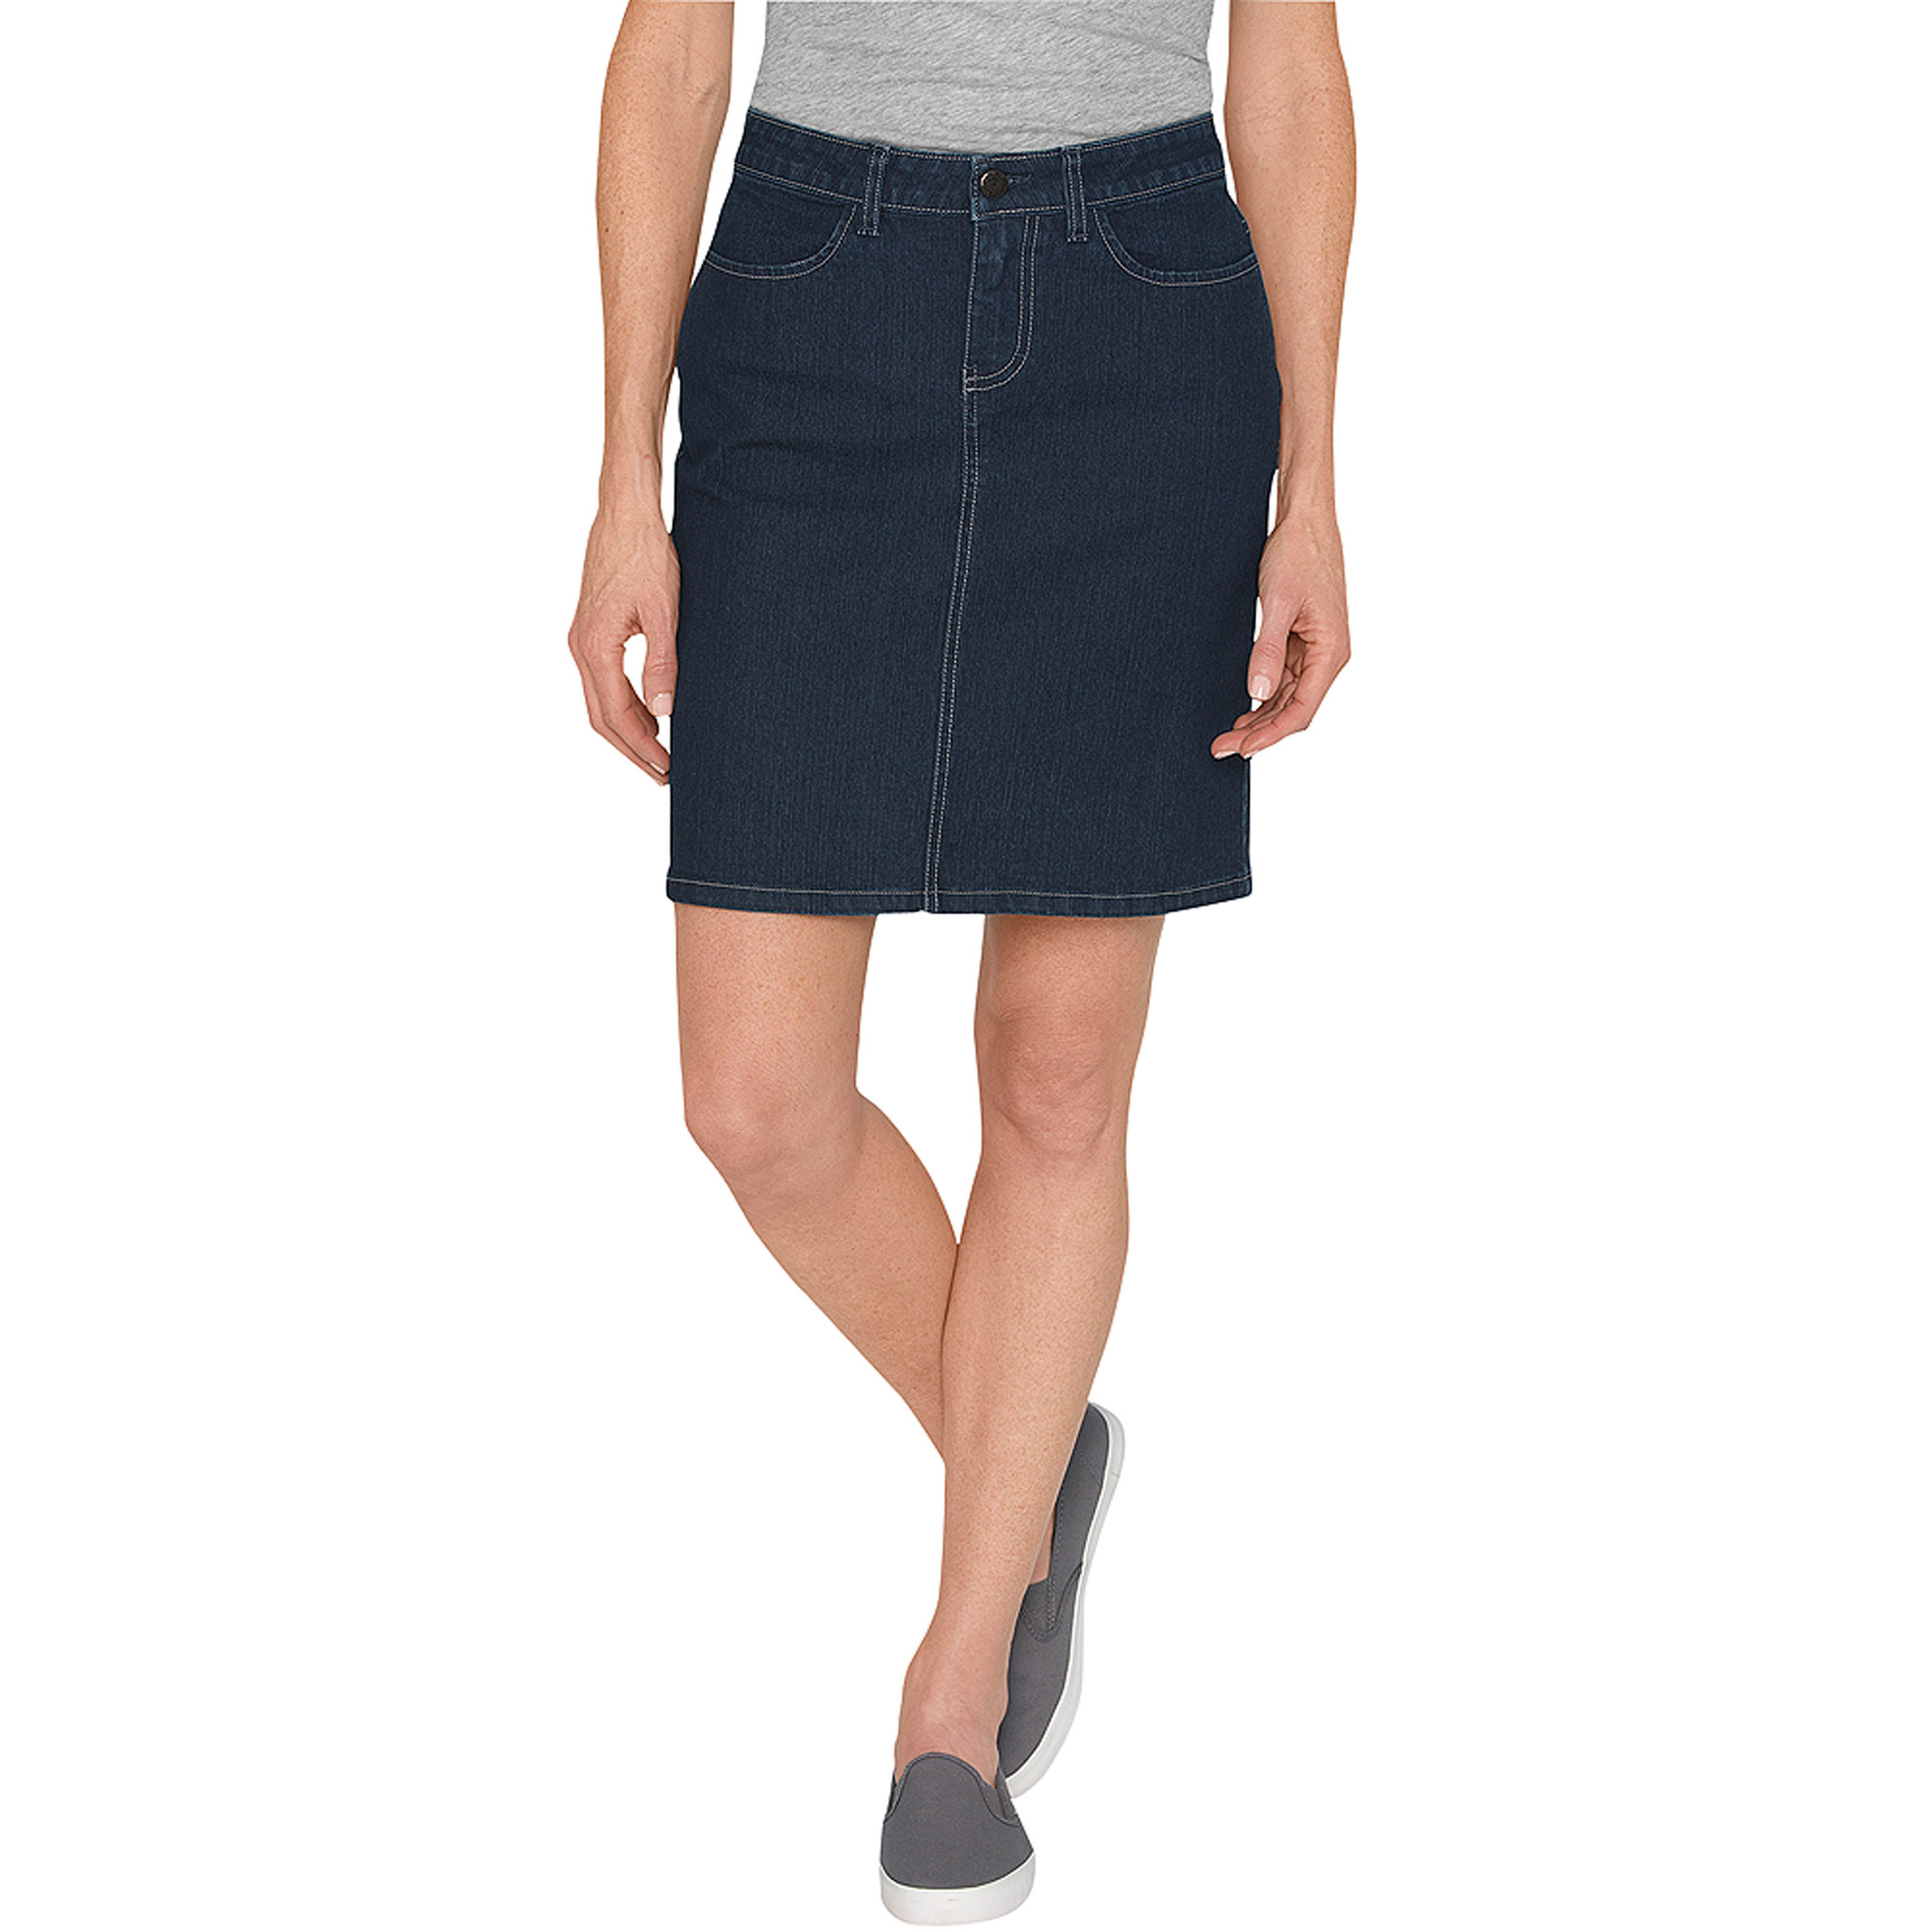 Genuine Dickies Women's Denim Skirt - Walmart.com